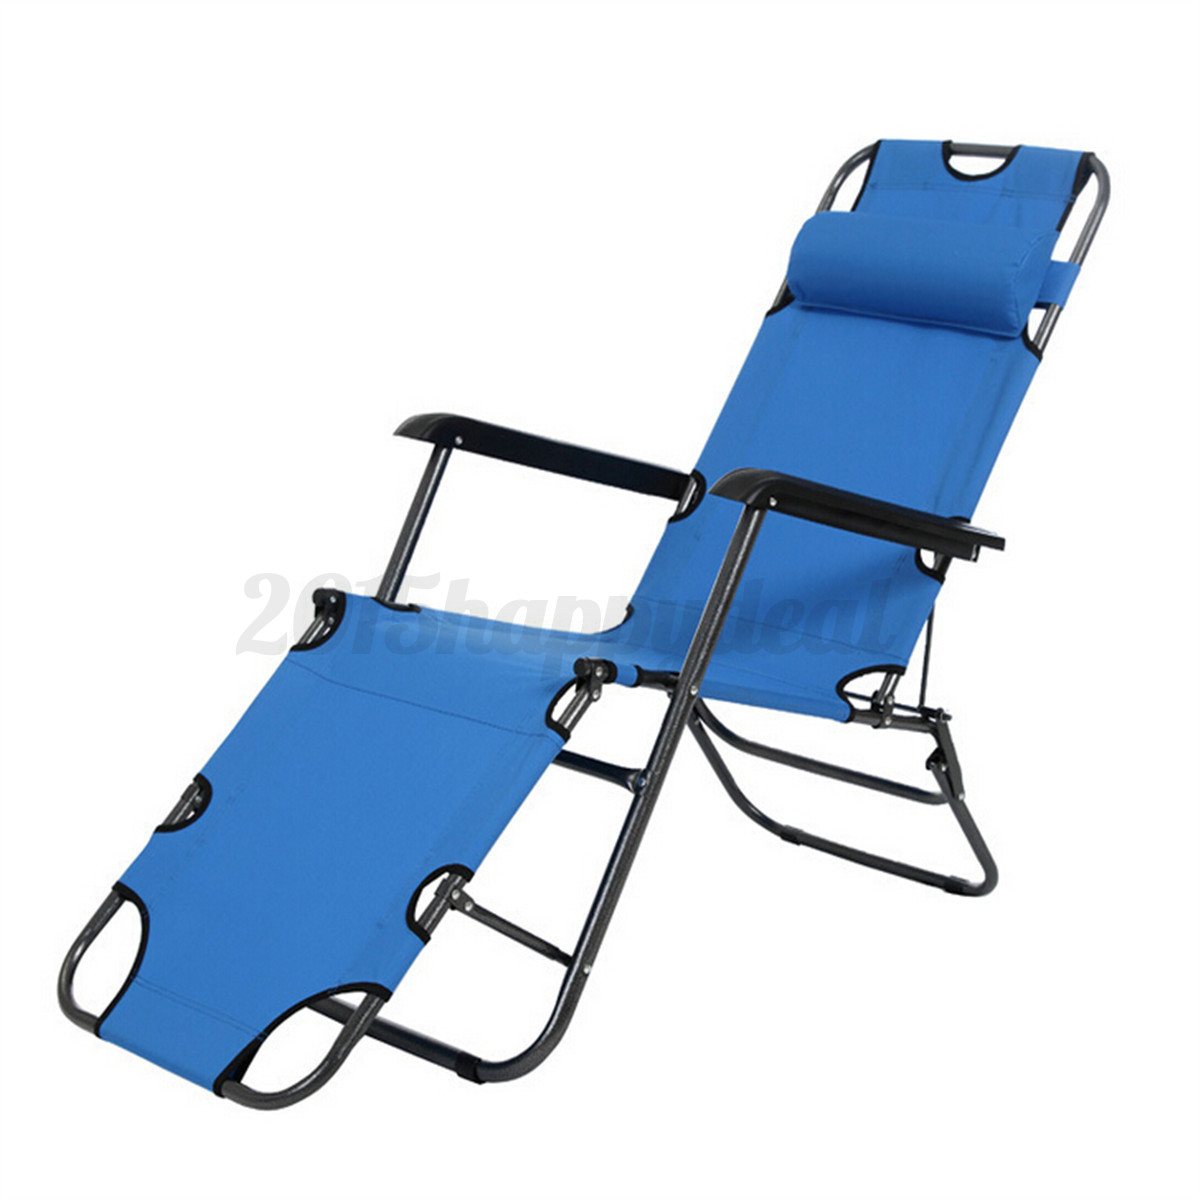 FOLDING RECLINING GARDEN OUTDOOR SUN LOUNGER CAMPING BEACH LOUNGE CHAIR